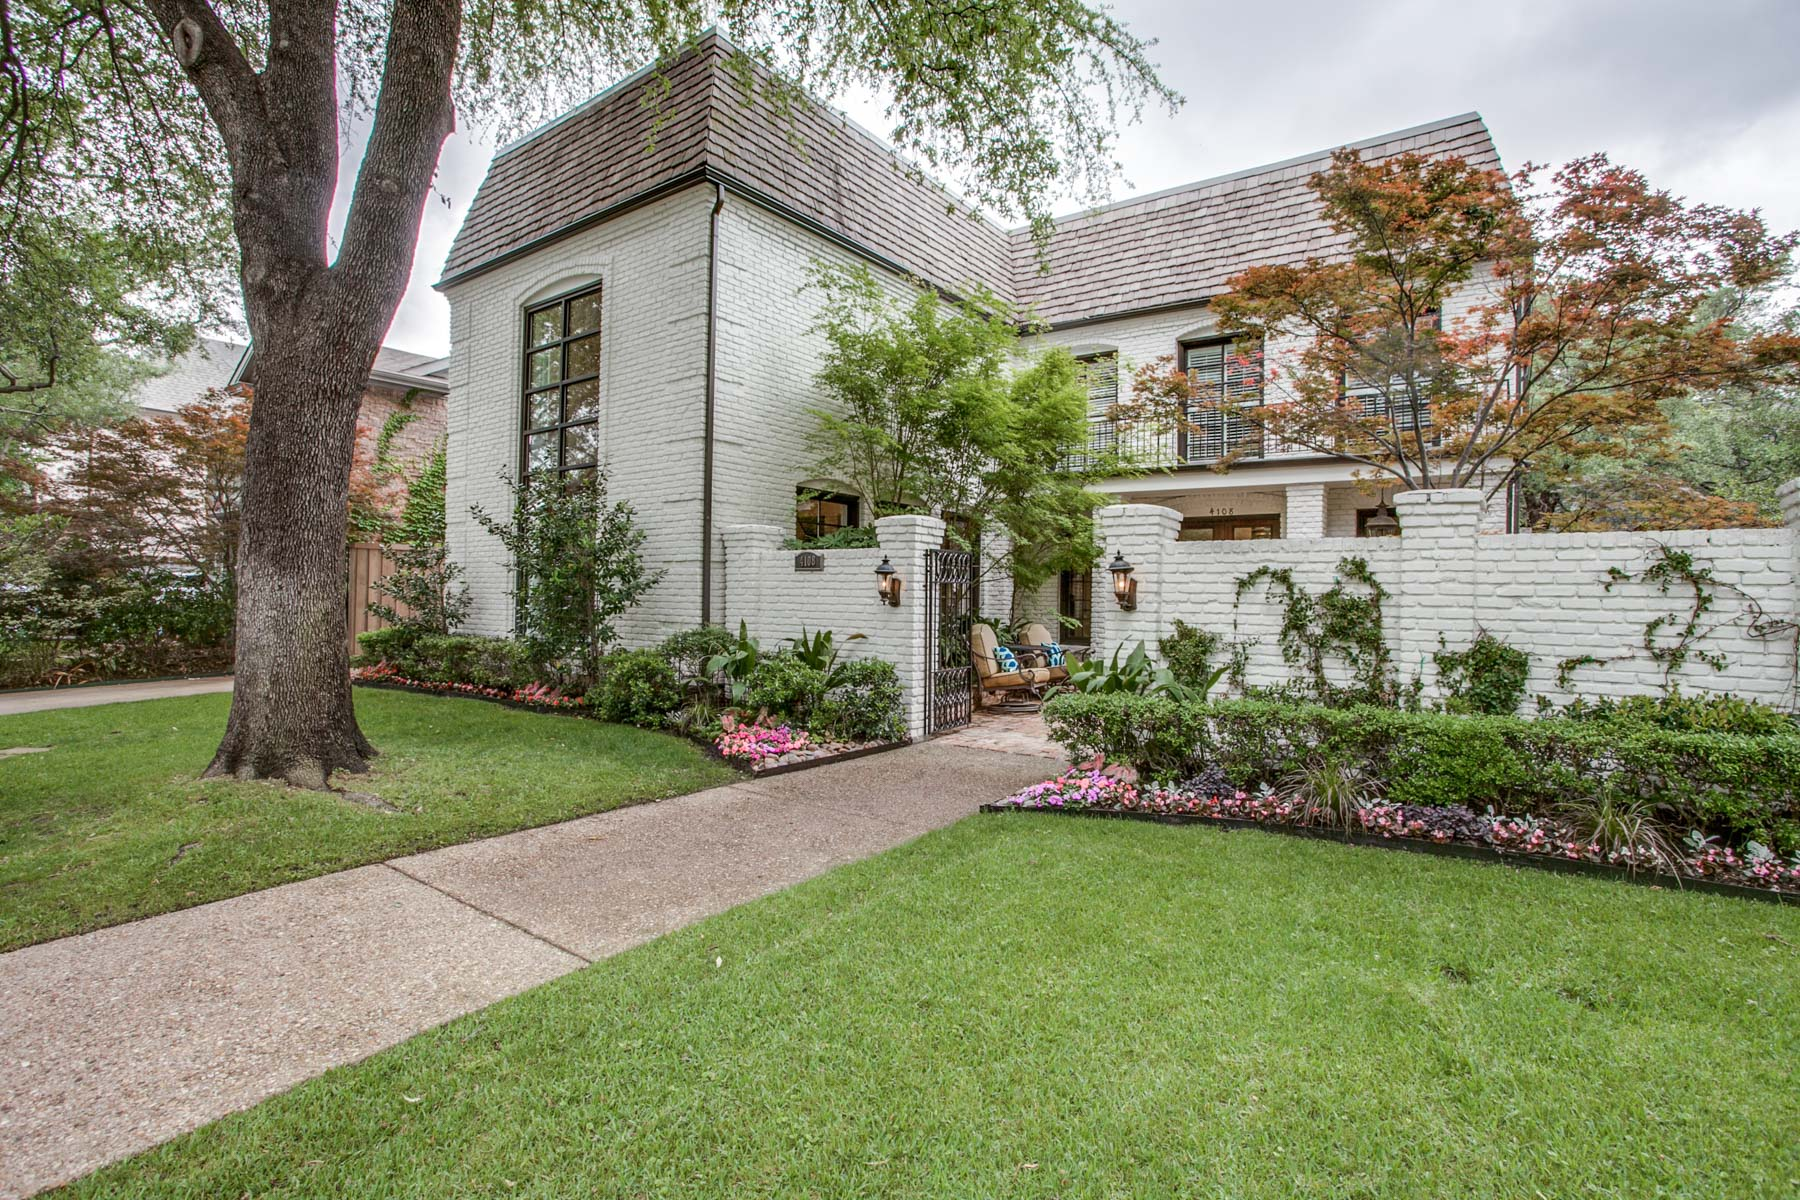 Casa Unifamiliar por un Venta en Custom University Park 4108 Stanhope St Dallas, Texas, 75205 Estados Unidos